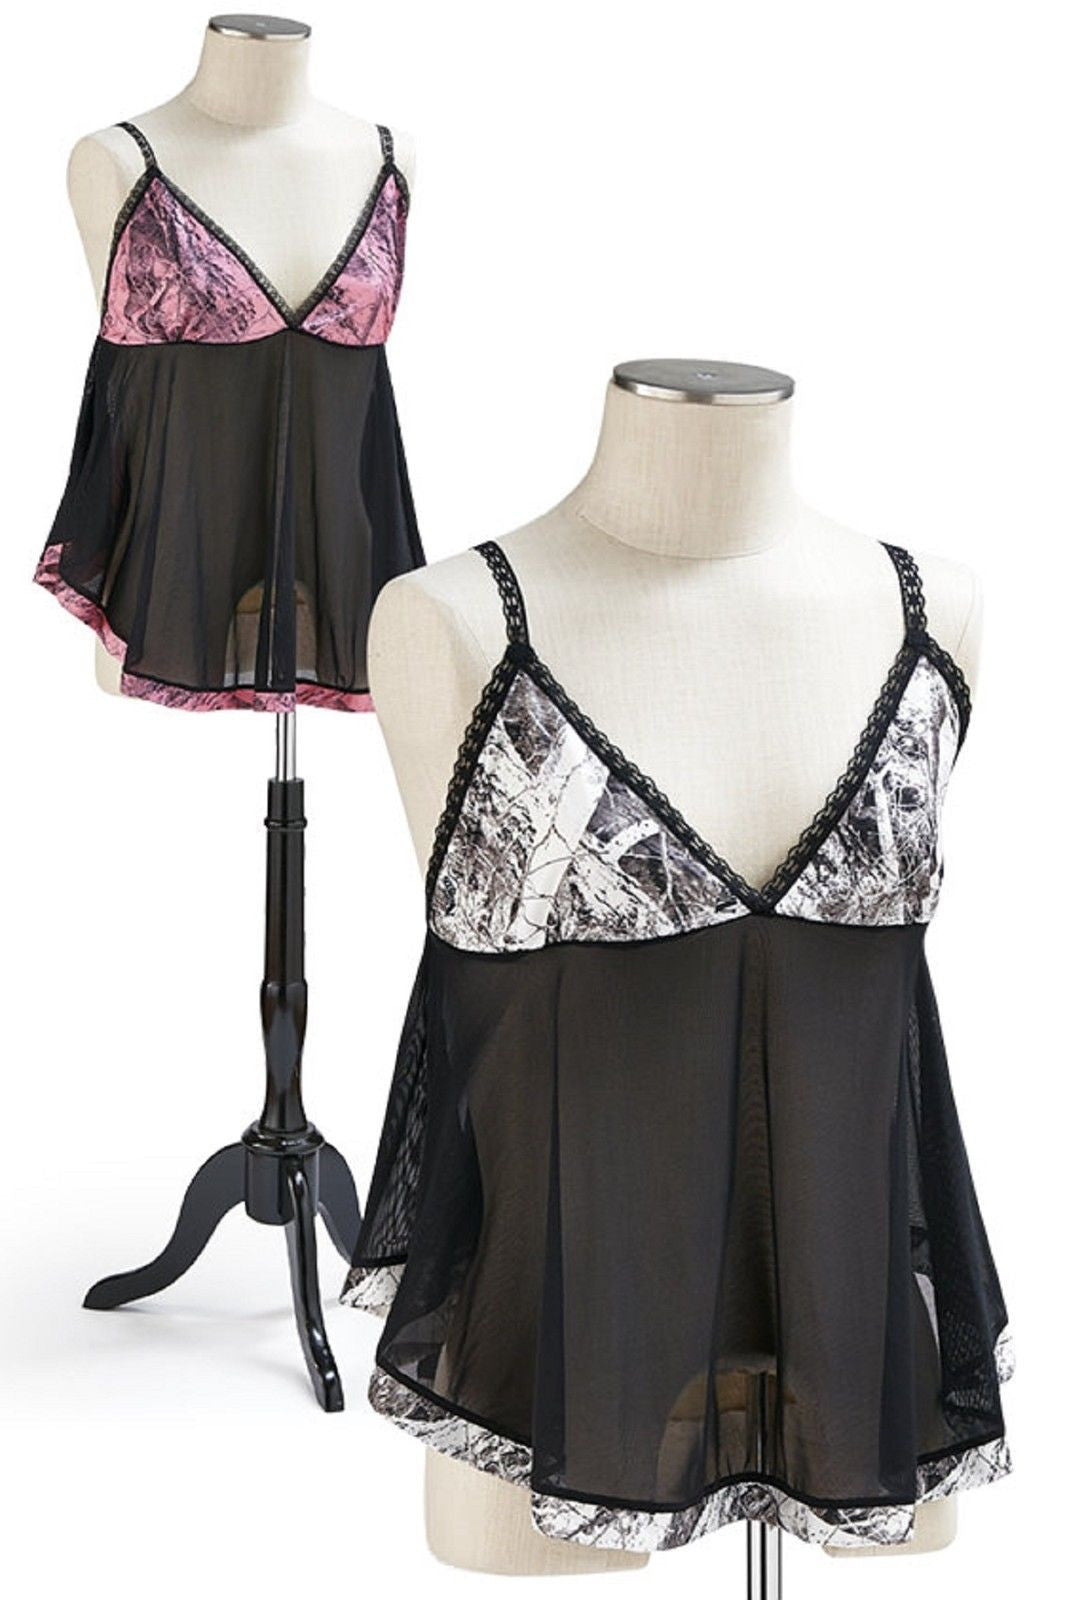 a0d9c6548f88 Naked North Pink or Snow Camo Lingerie Mesh Dress & Pantie Baby Doll Set  S-XL.